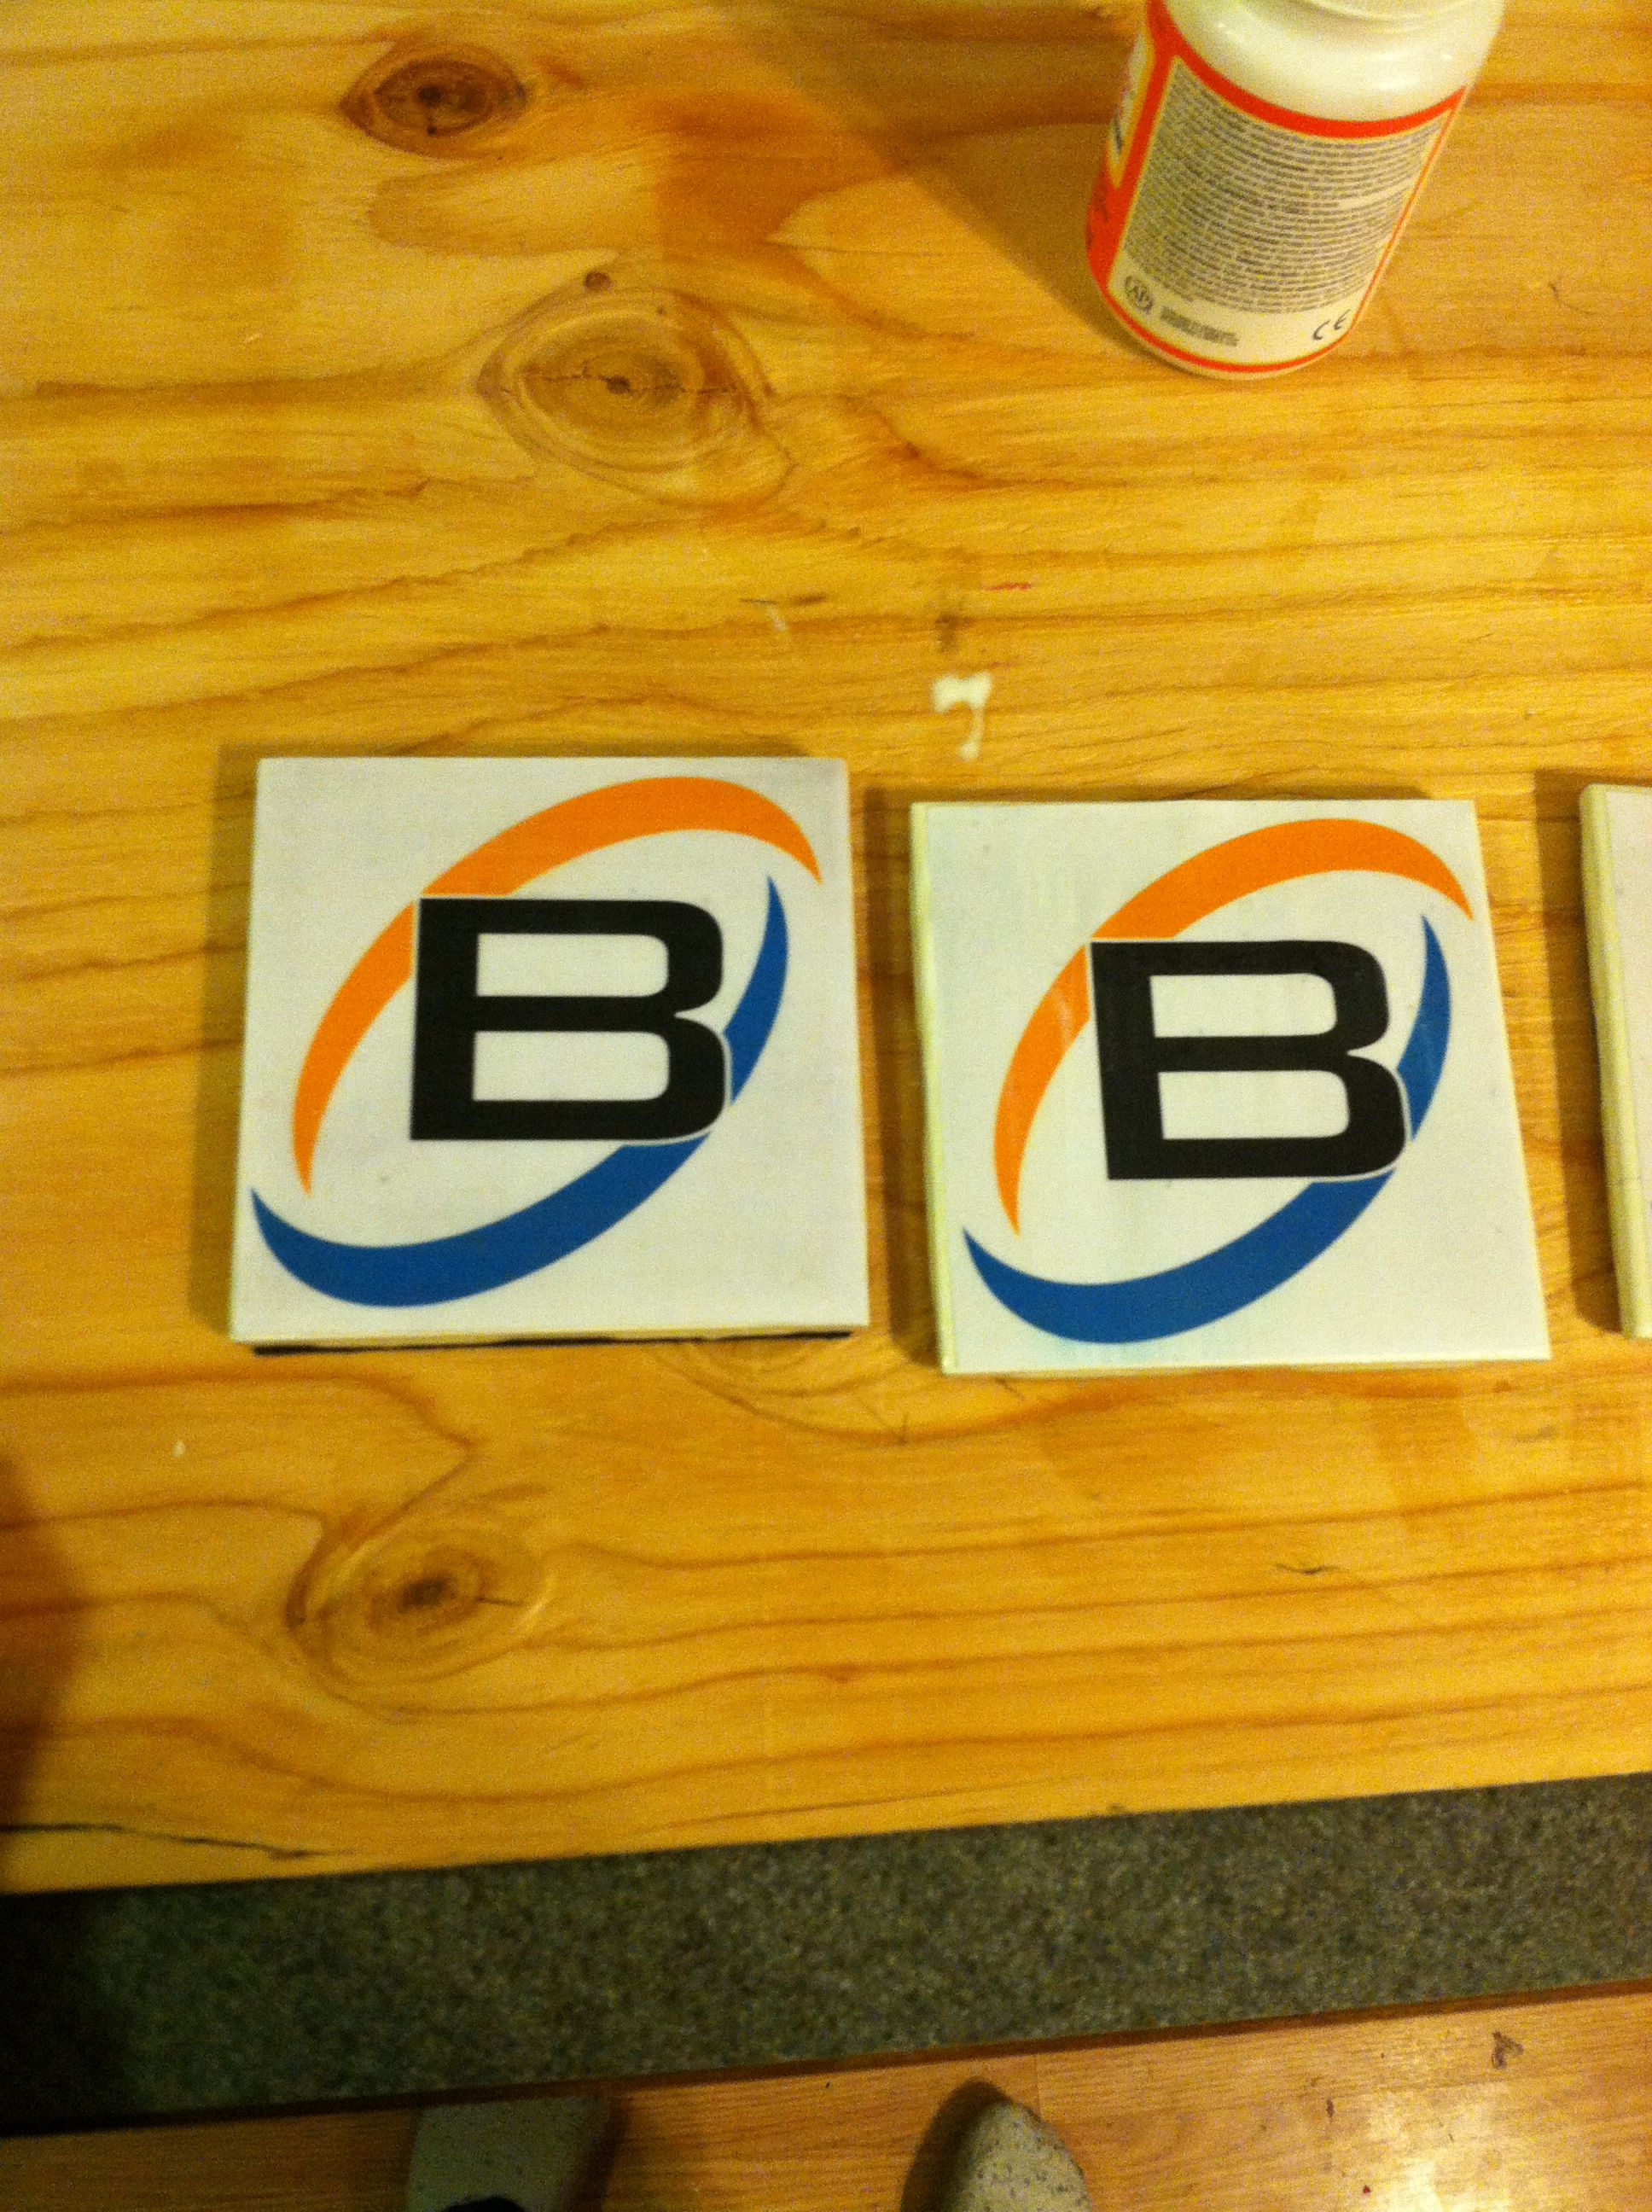 Homemade Barron heating coasters